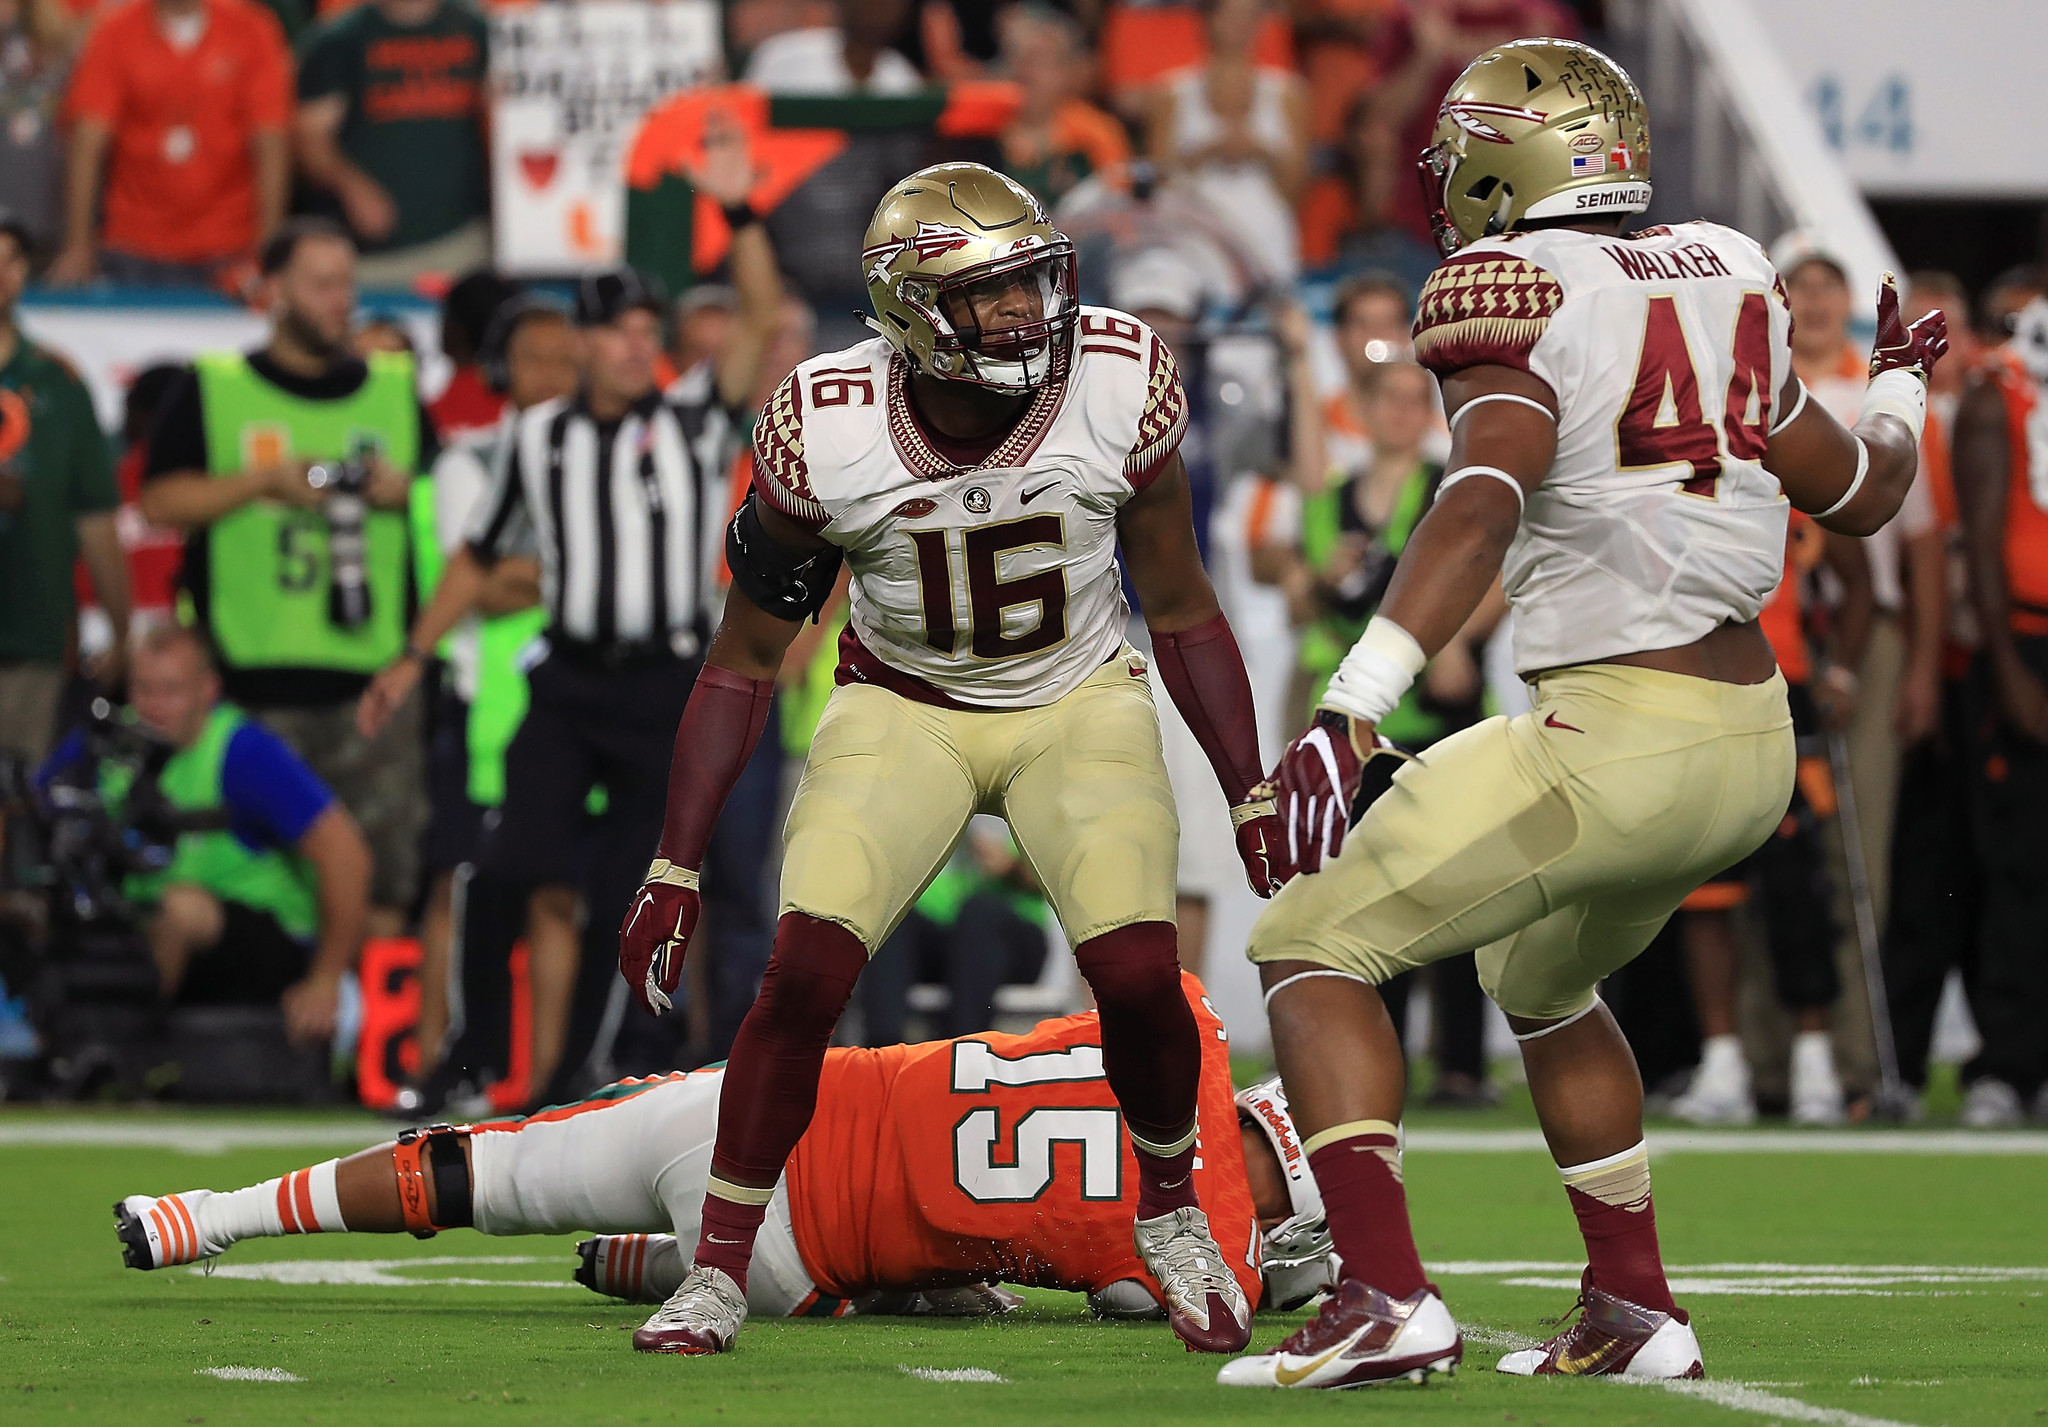 Os-fsu-defense-turning-point-promise-letters-20161012